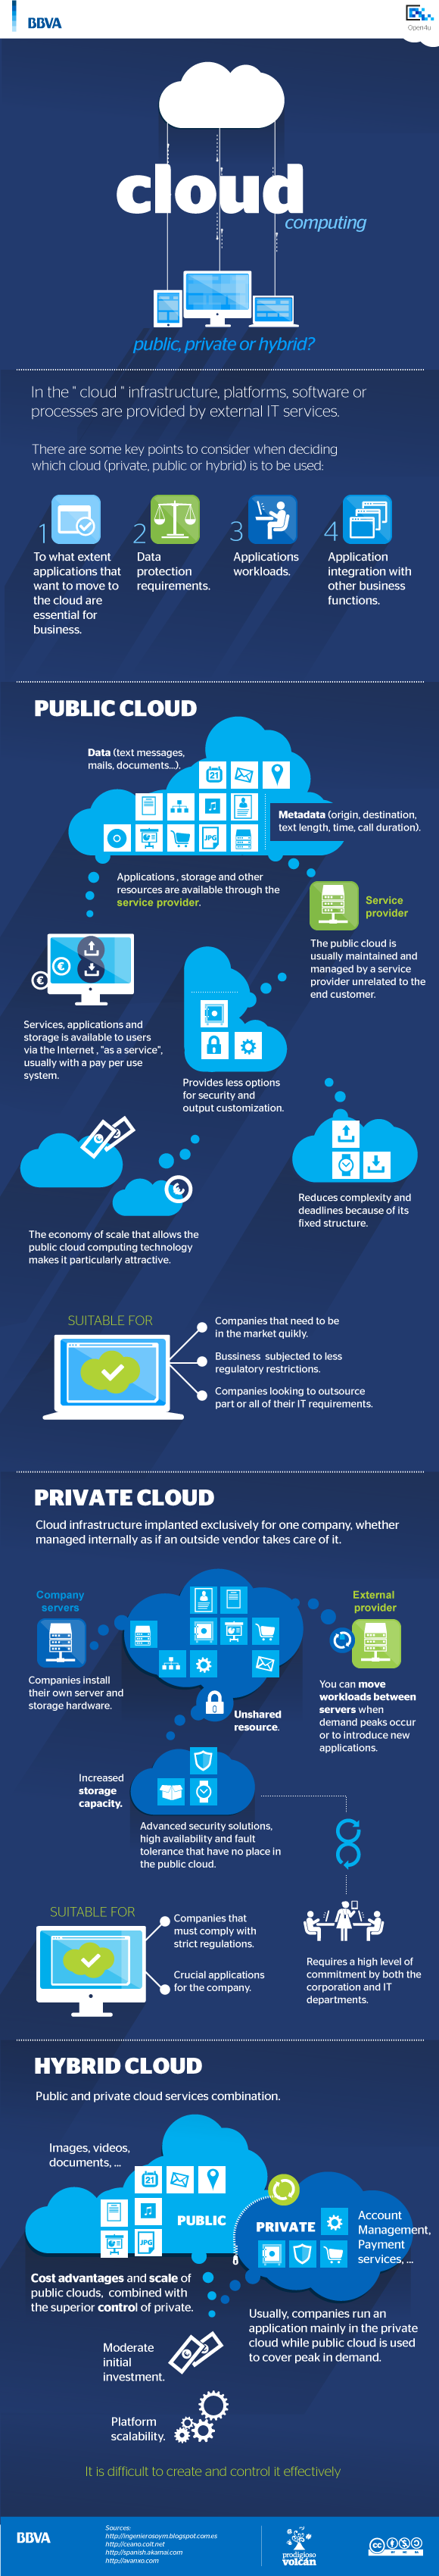 Cloud Computing Public Private Or Hybrid Infographic Cloud Computing Cloud Computing Services Clouds